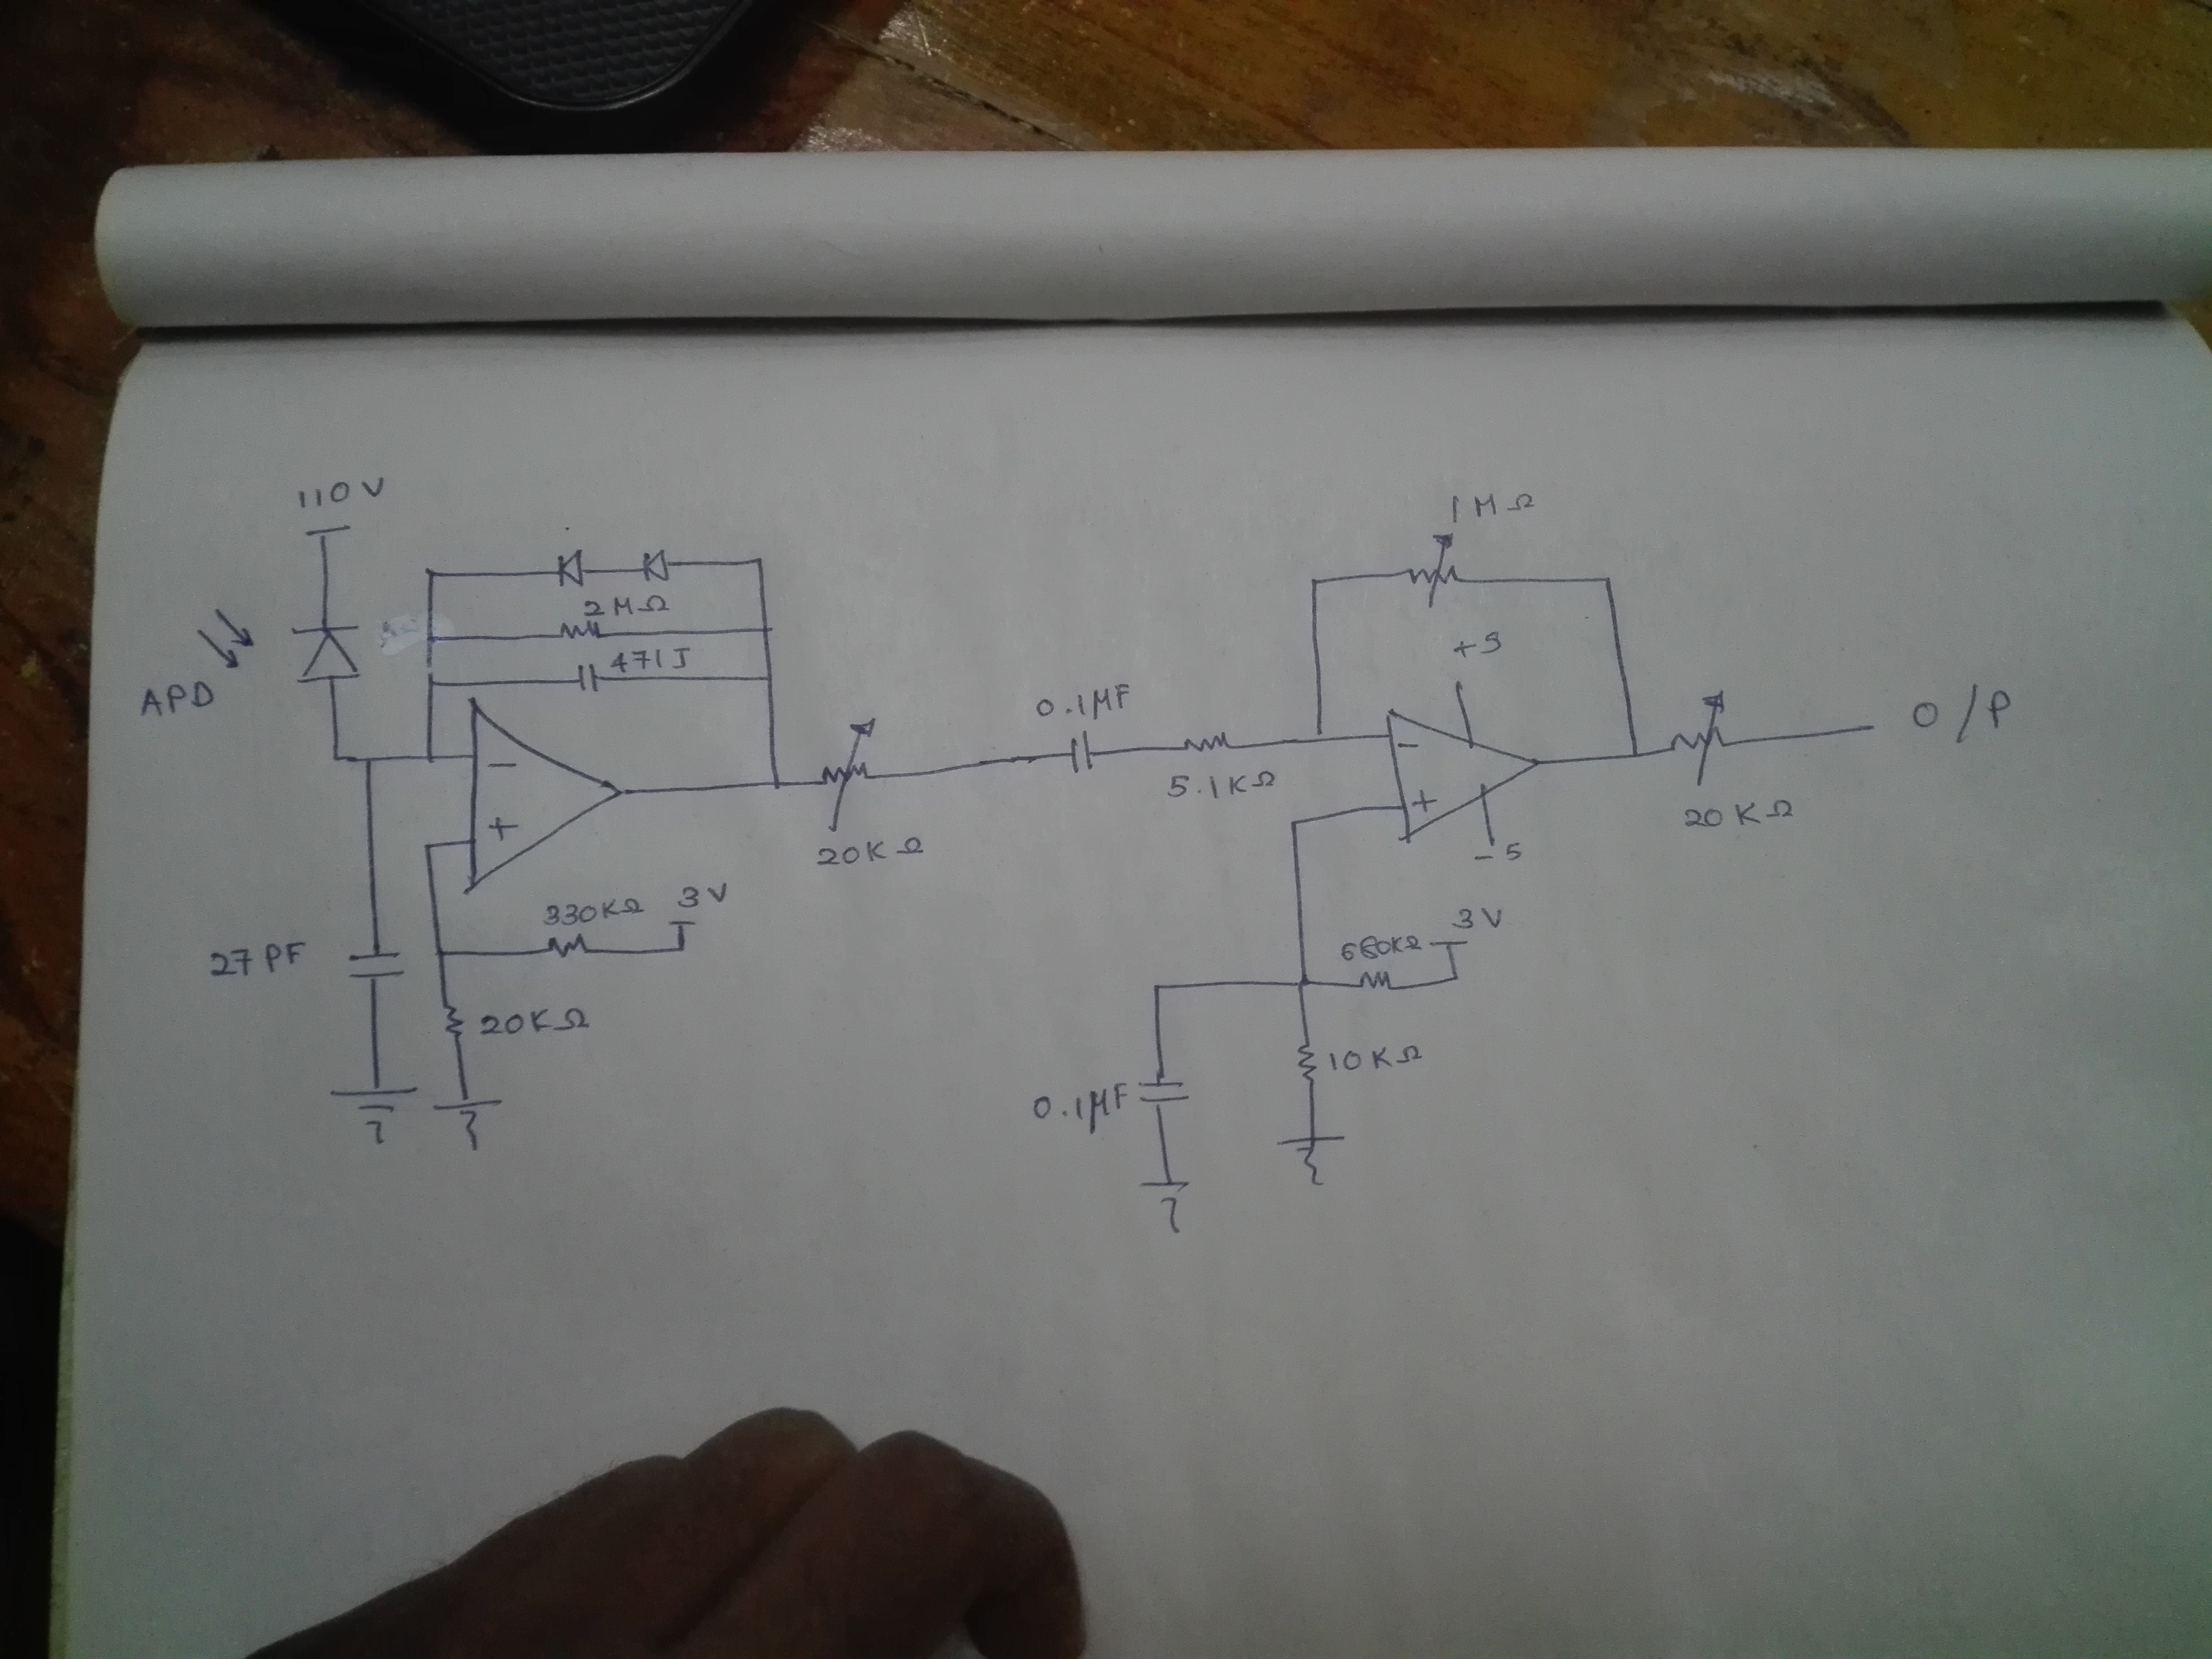 Opa656 Transimpedance Amplifier Amplifiers Forum Proposed Schematic